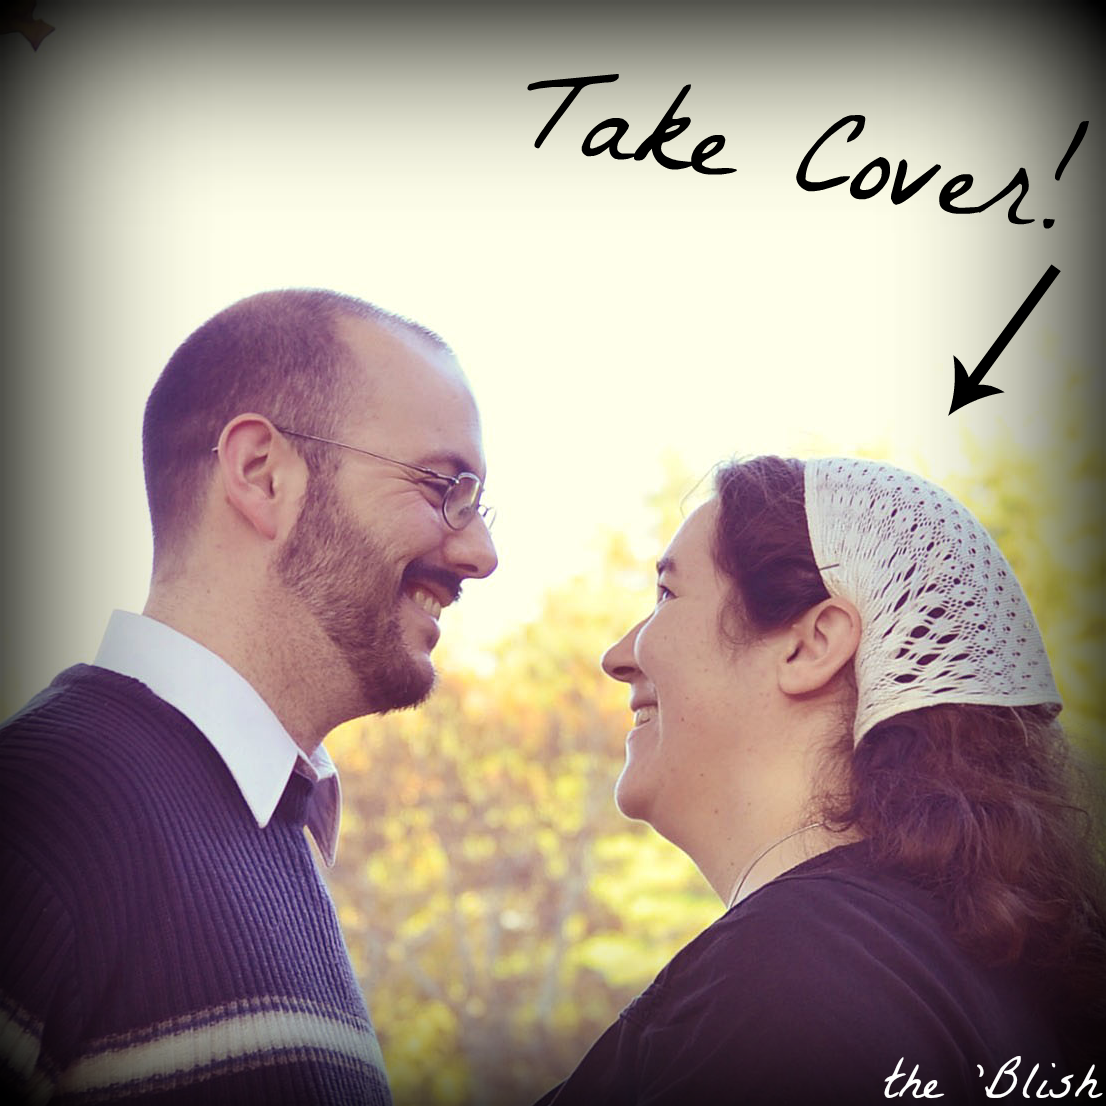 Take cover: biblical headcoverings